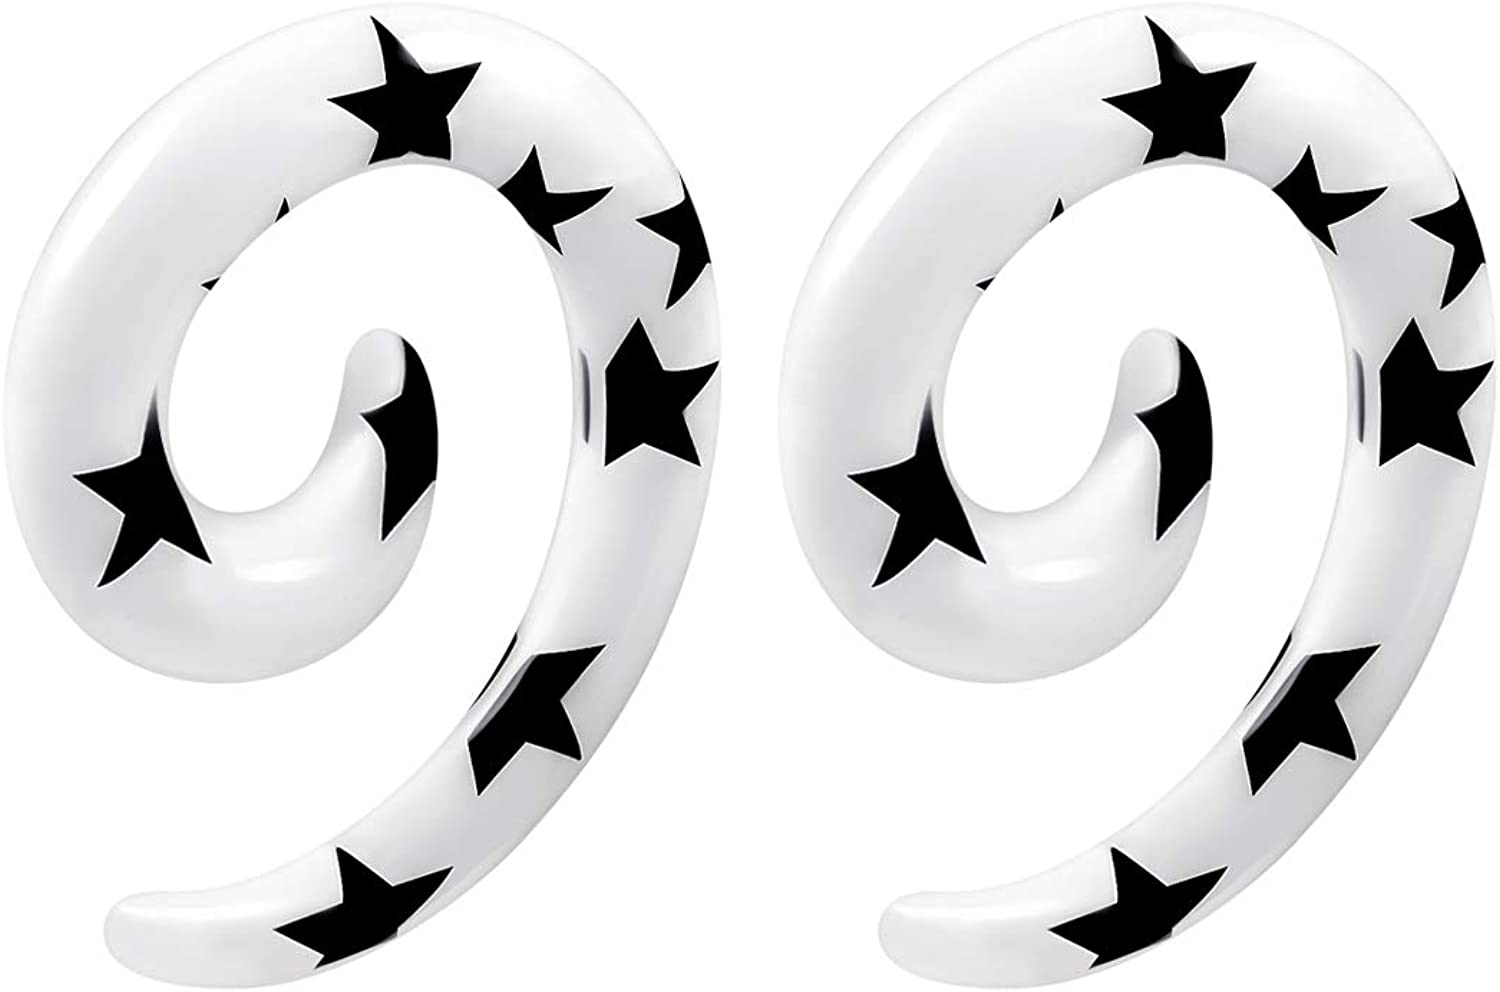 BIG GAUGES Pair of Acrylic Black Star Spiral Taper Expander Piercing Jewelry Ear Stretcher Stretching Earring Lobe Plugs